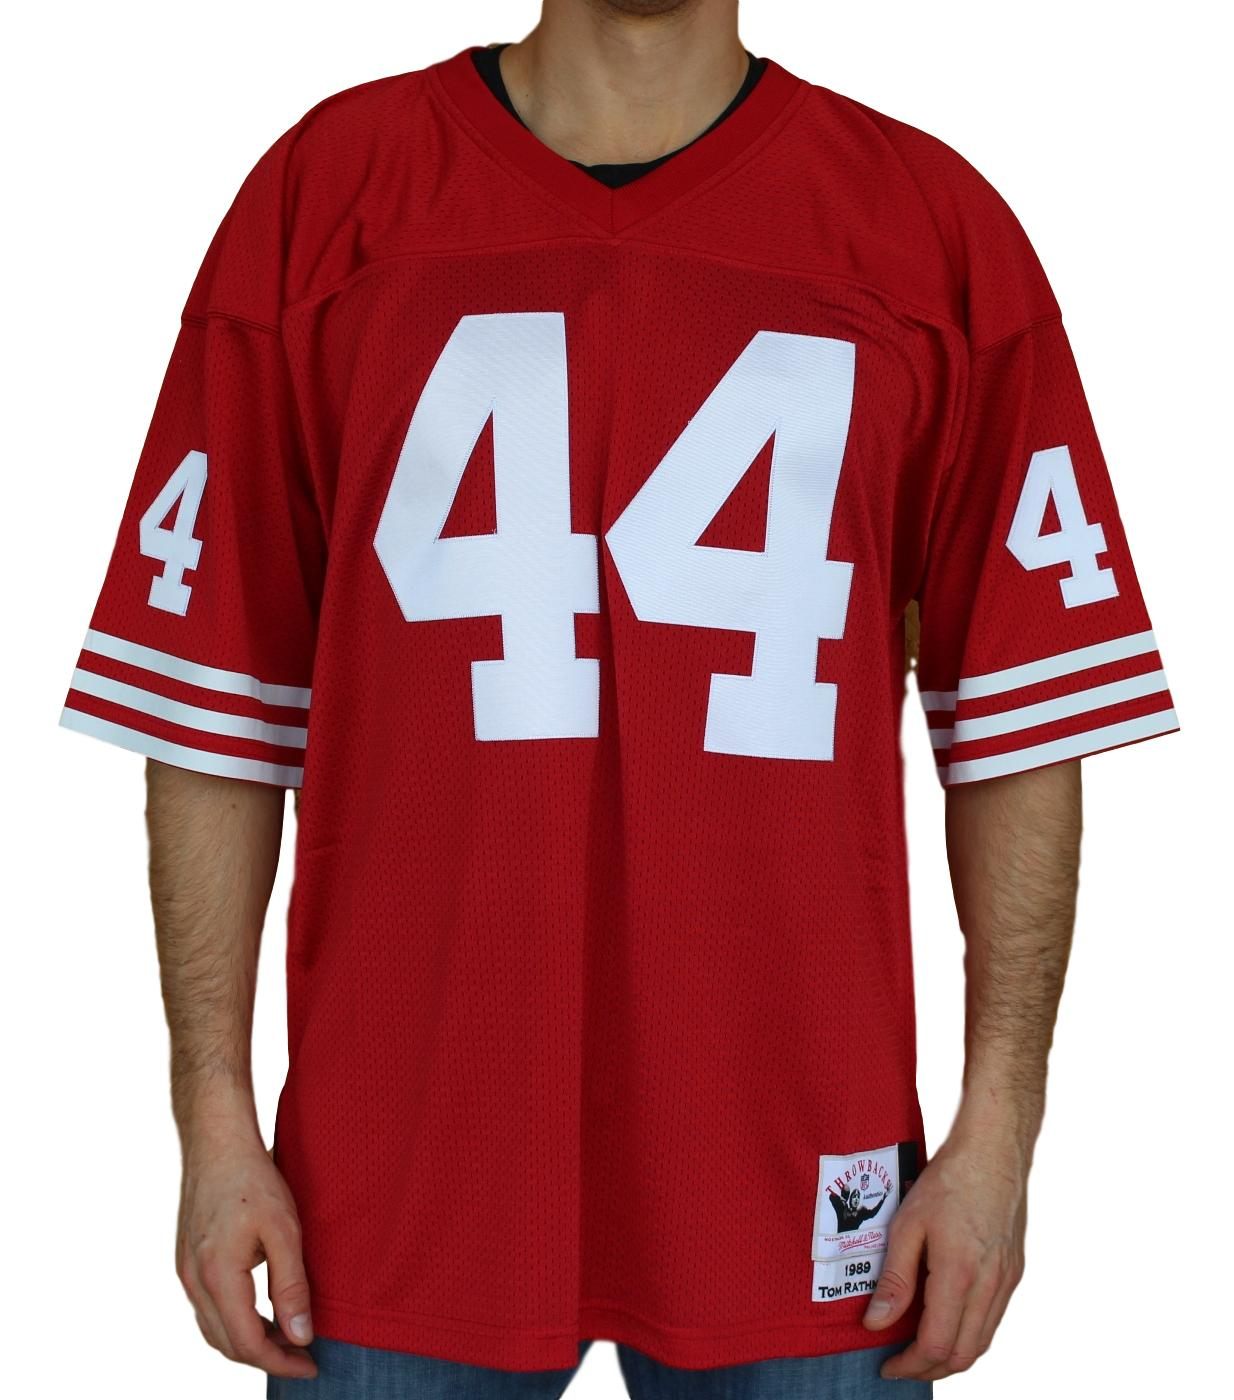 Details about Tom Rathman San Francisco 49ers Mitchell   Ness Authentic  1989 NFL Jersey 27b4198b8